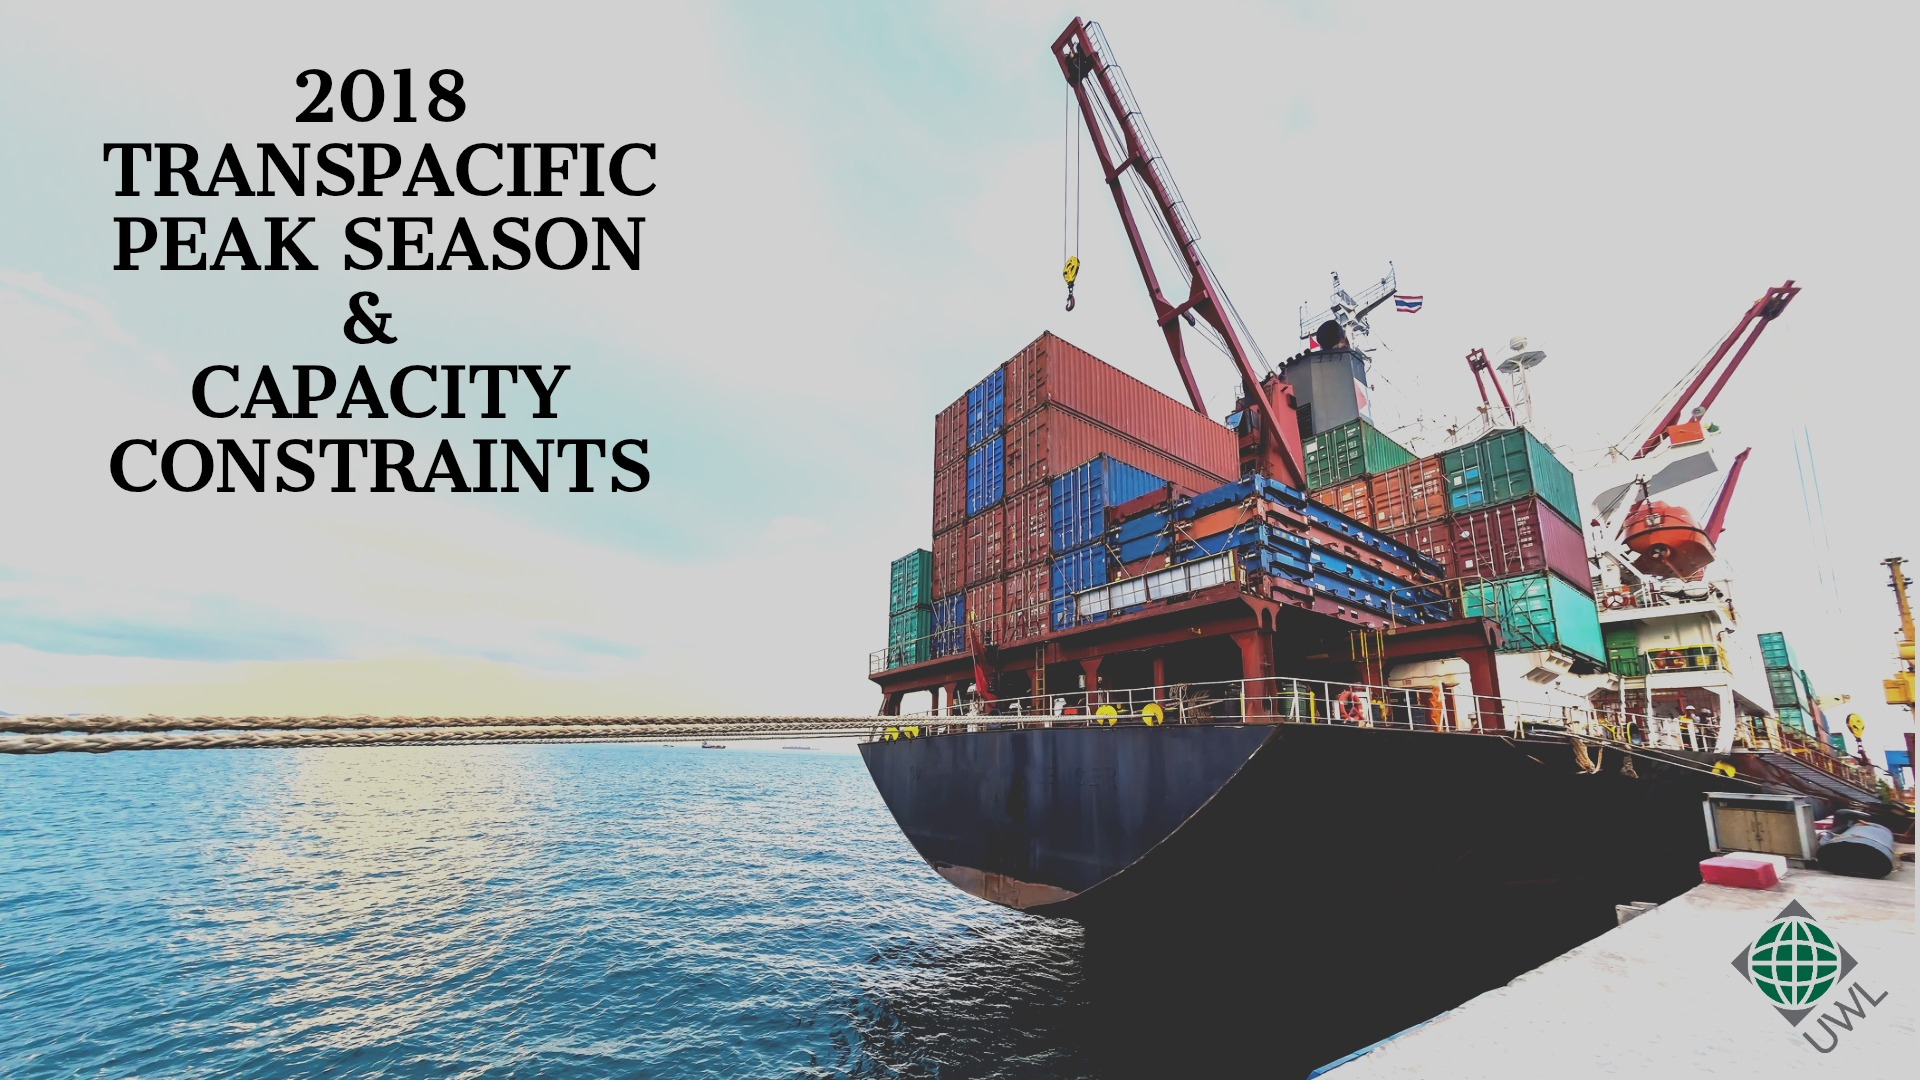 2018 Transpacific peak season capacity constraints